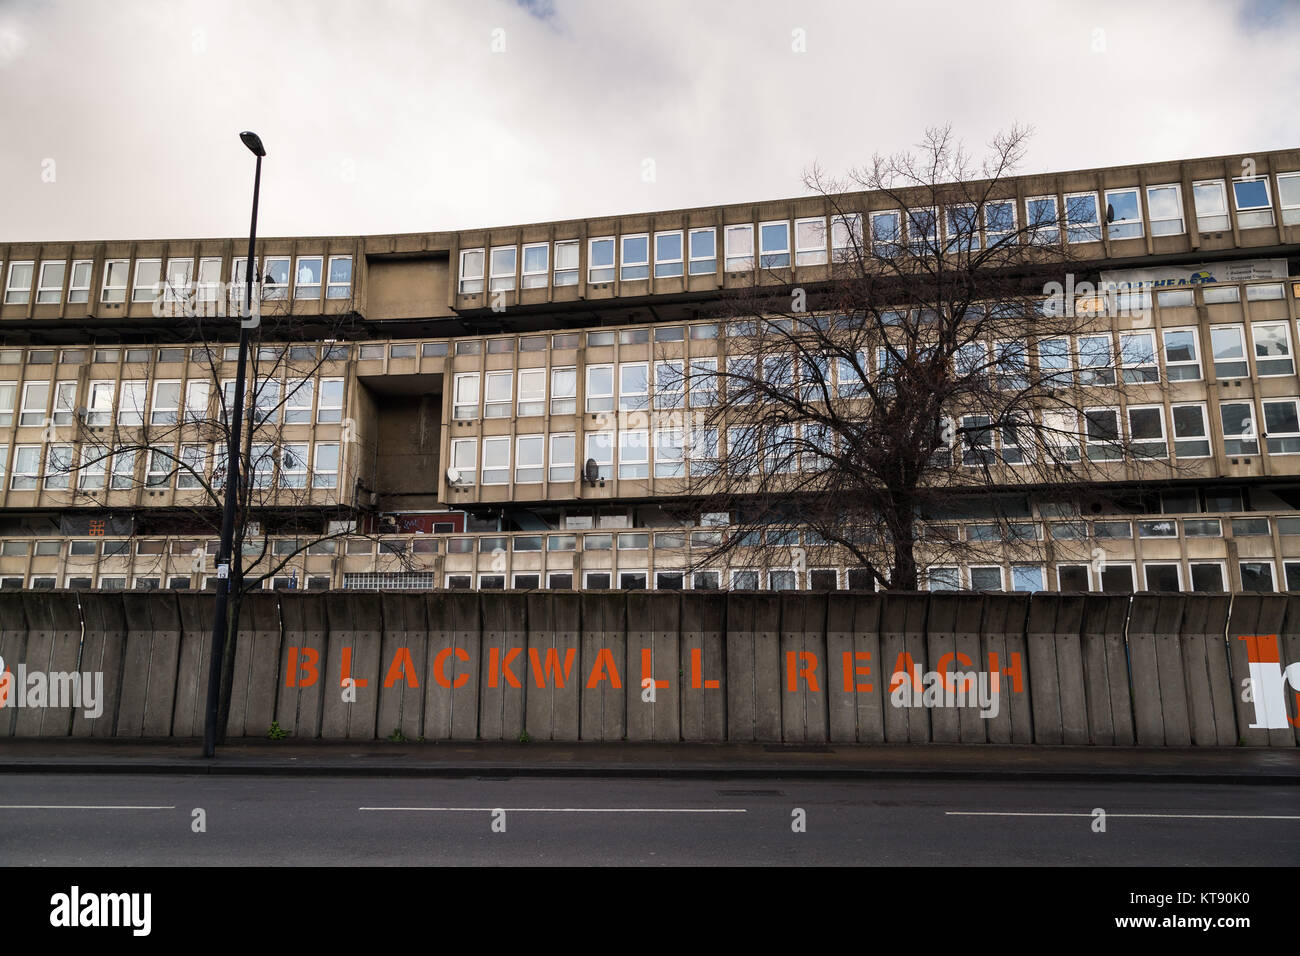 a geography of robin hood gardens estate Our illustrious mayor lutfur rahman turned up at poplar mosque & community centre woolmore street e14 on the robin hood gardens estate, on saturday, sunday & also monday evening for over 2.